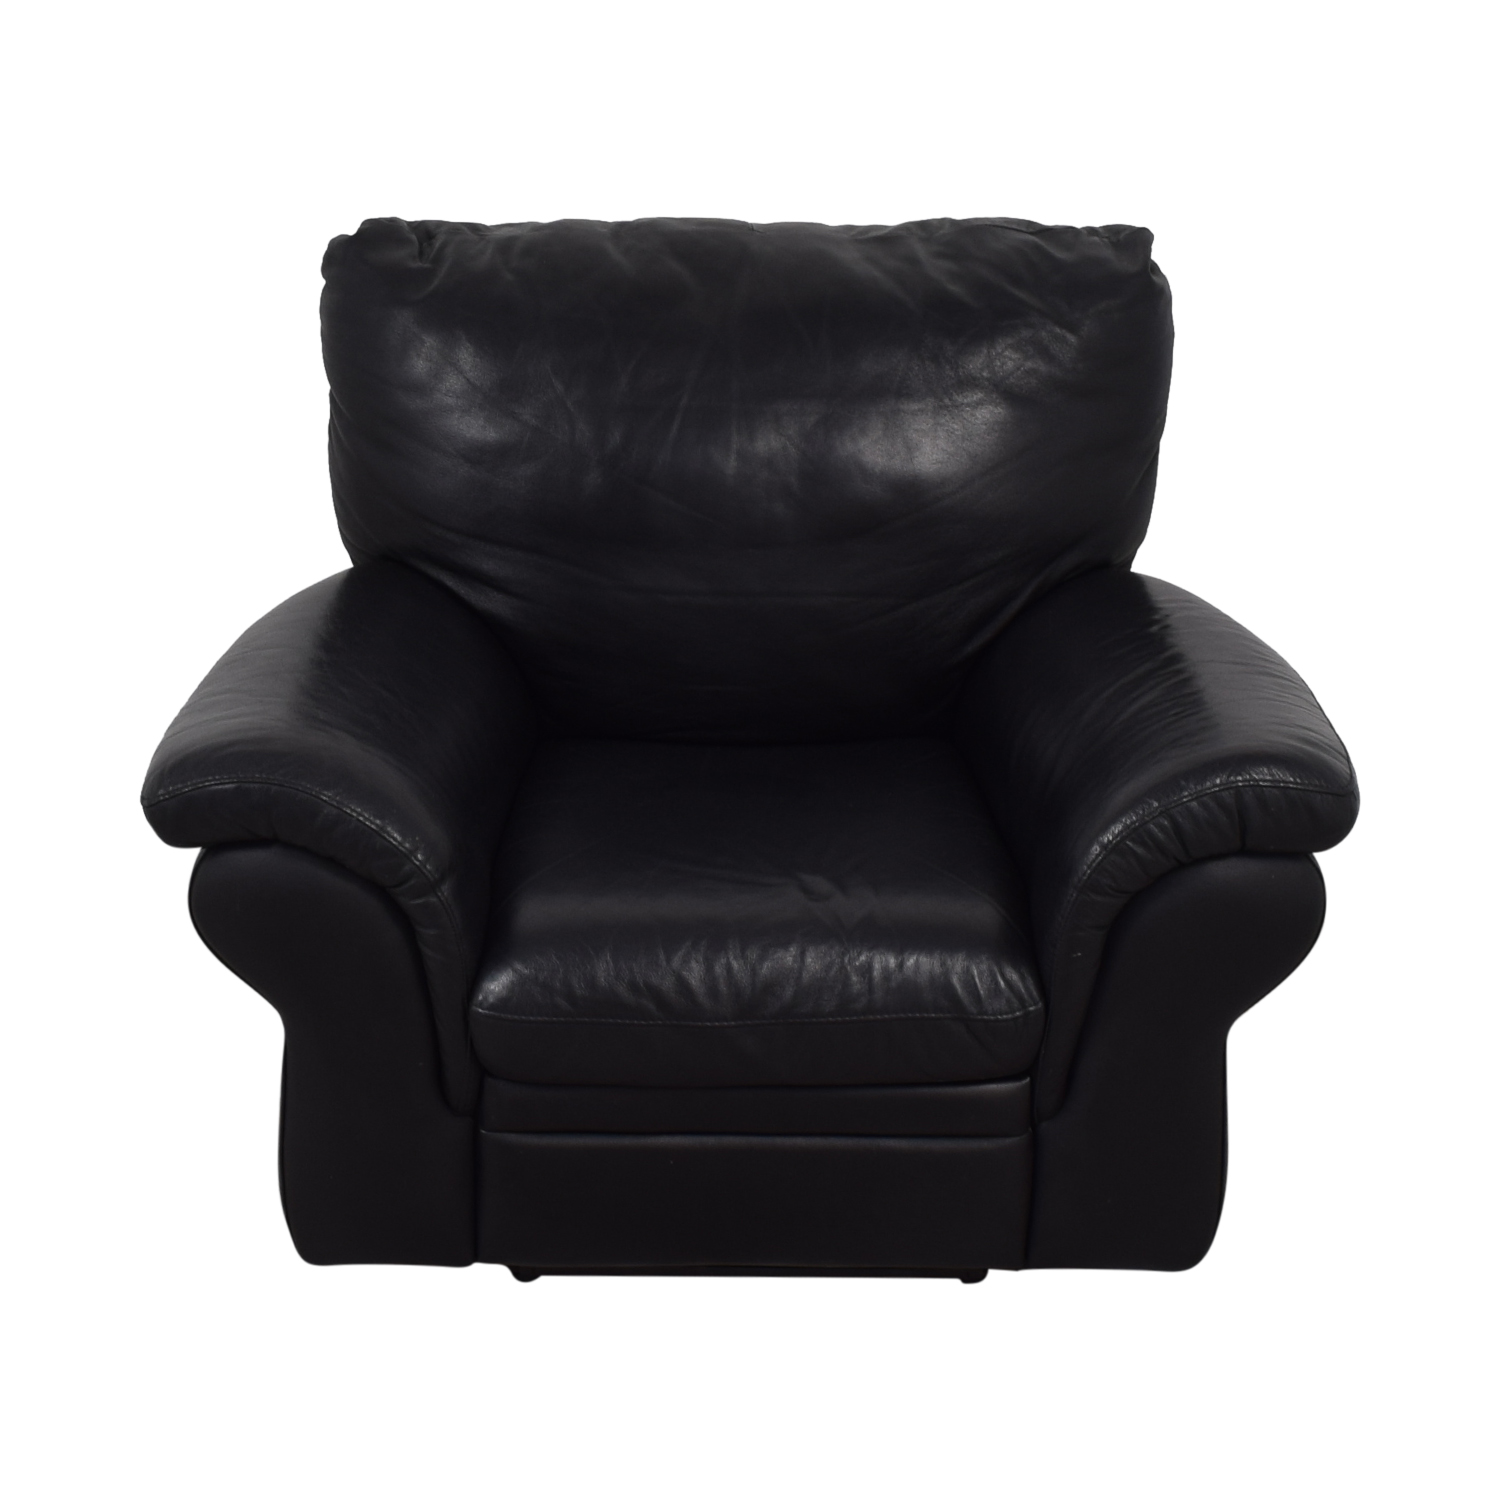 shop Bloomingdale's Bloomingdale's Black La-Z-Boy Recliner online